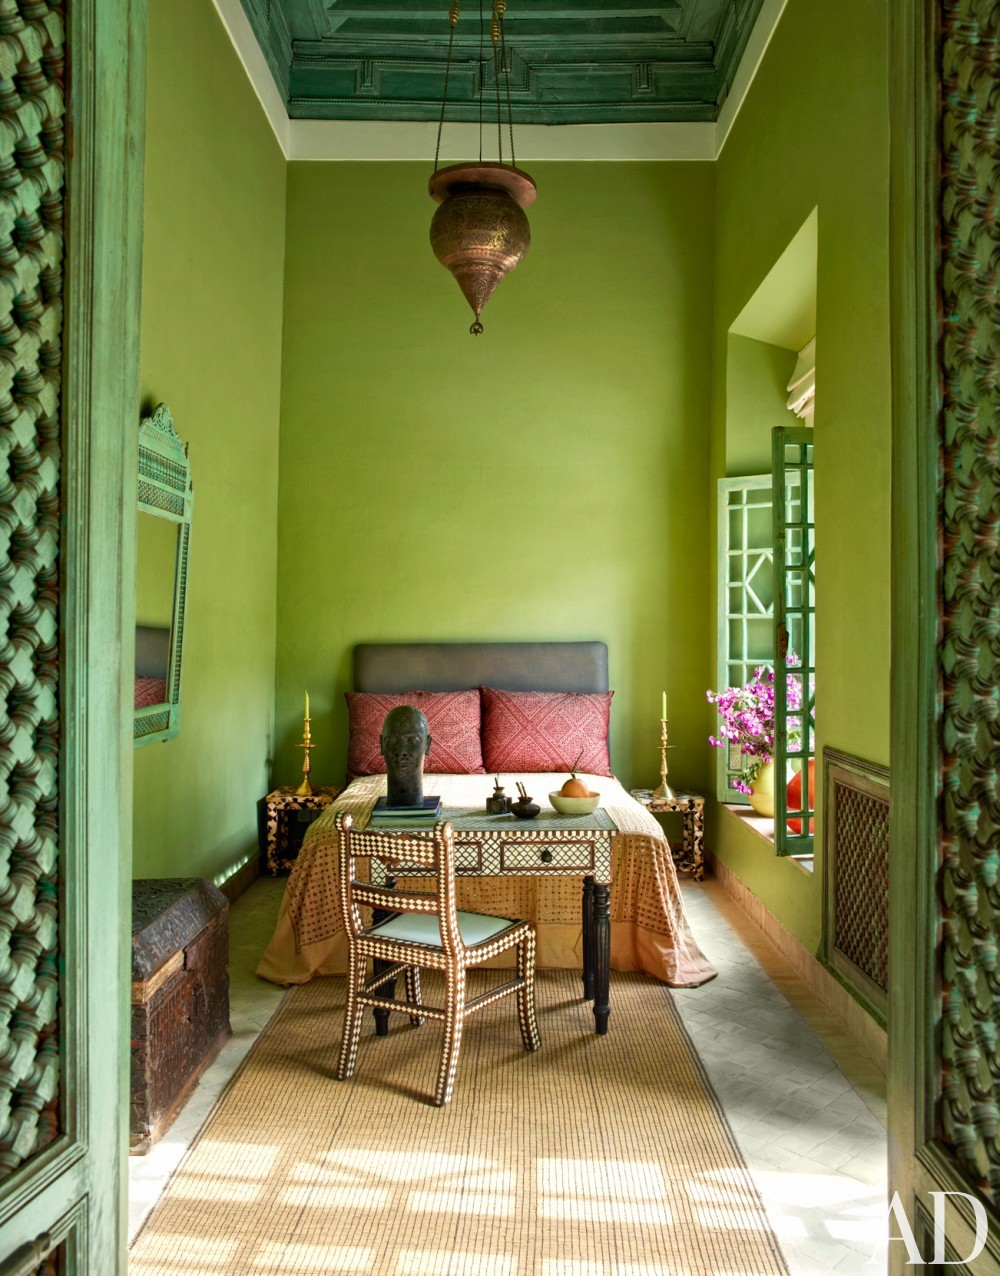 Exotic Bedroom by Ahmad Sardar-Afkhami in Marrakech, Morocco